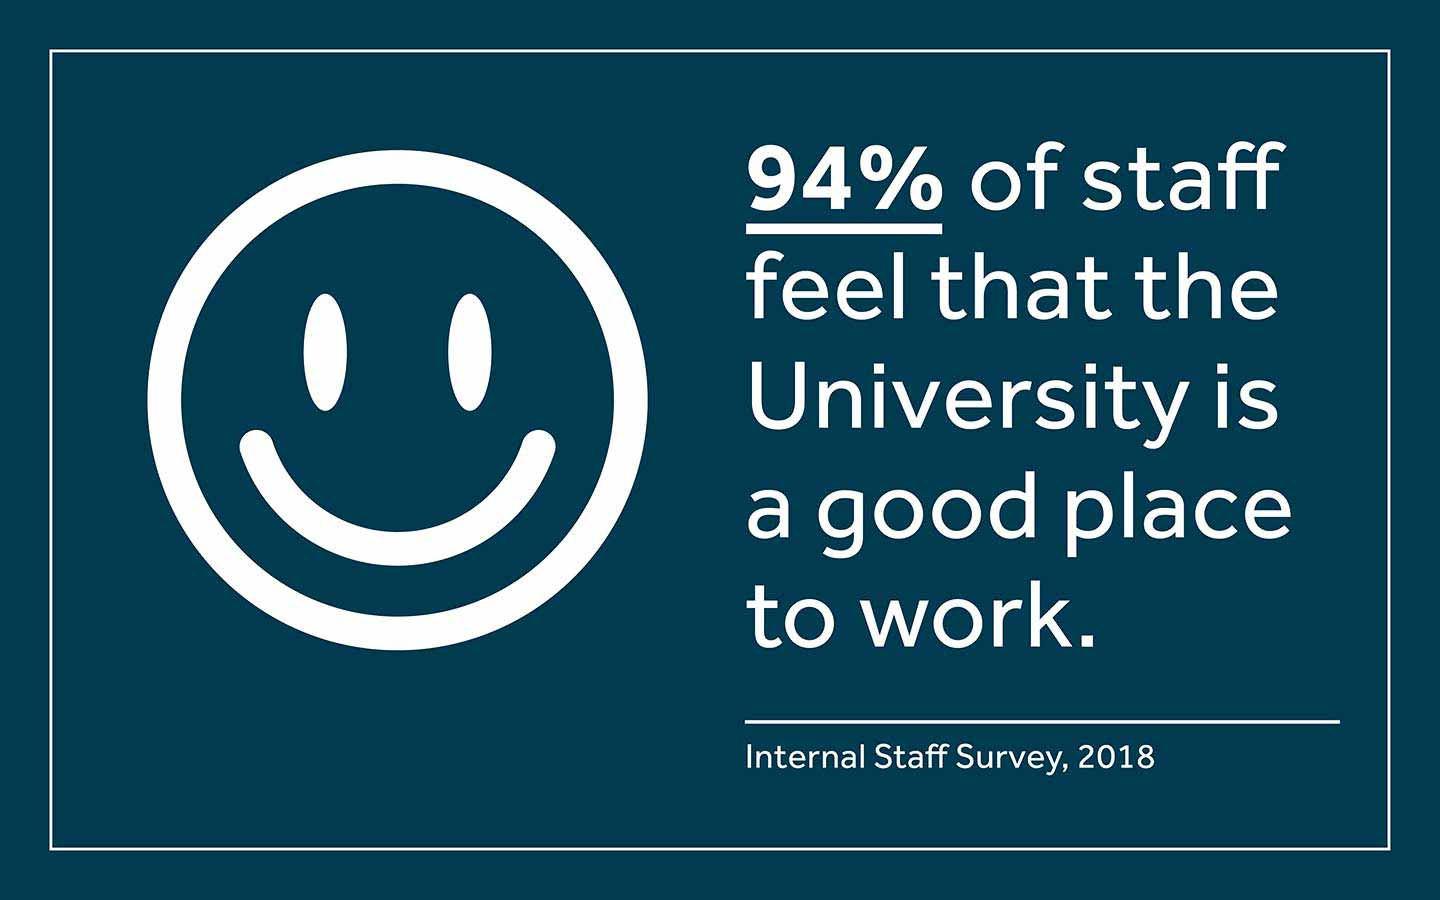 94% of staff believe the University is a good place to work